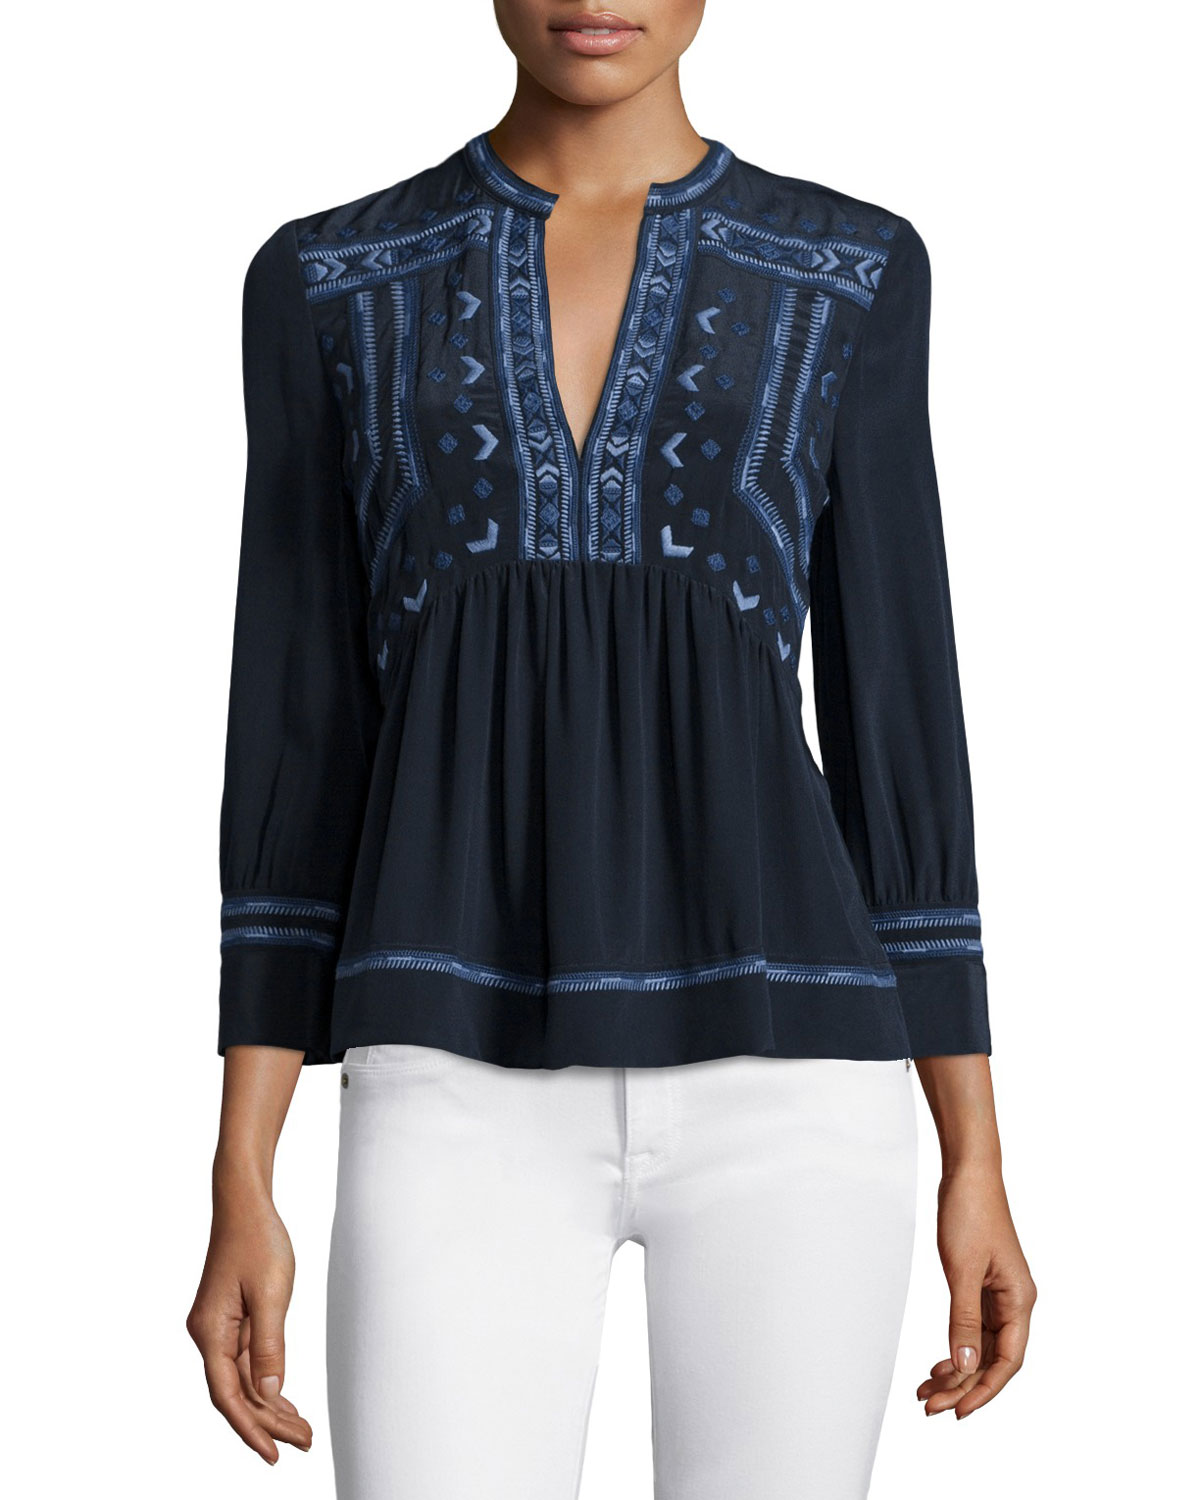 Rebecca Taylor Long-Sleeve Embroidered Top, Navy, Size: 8